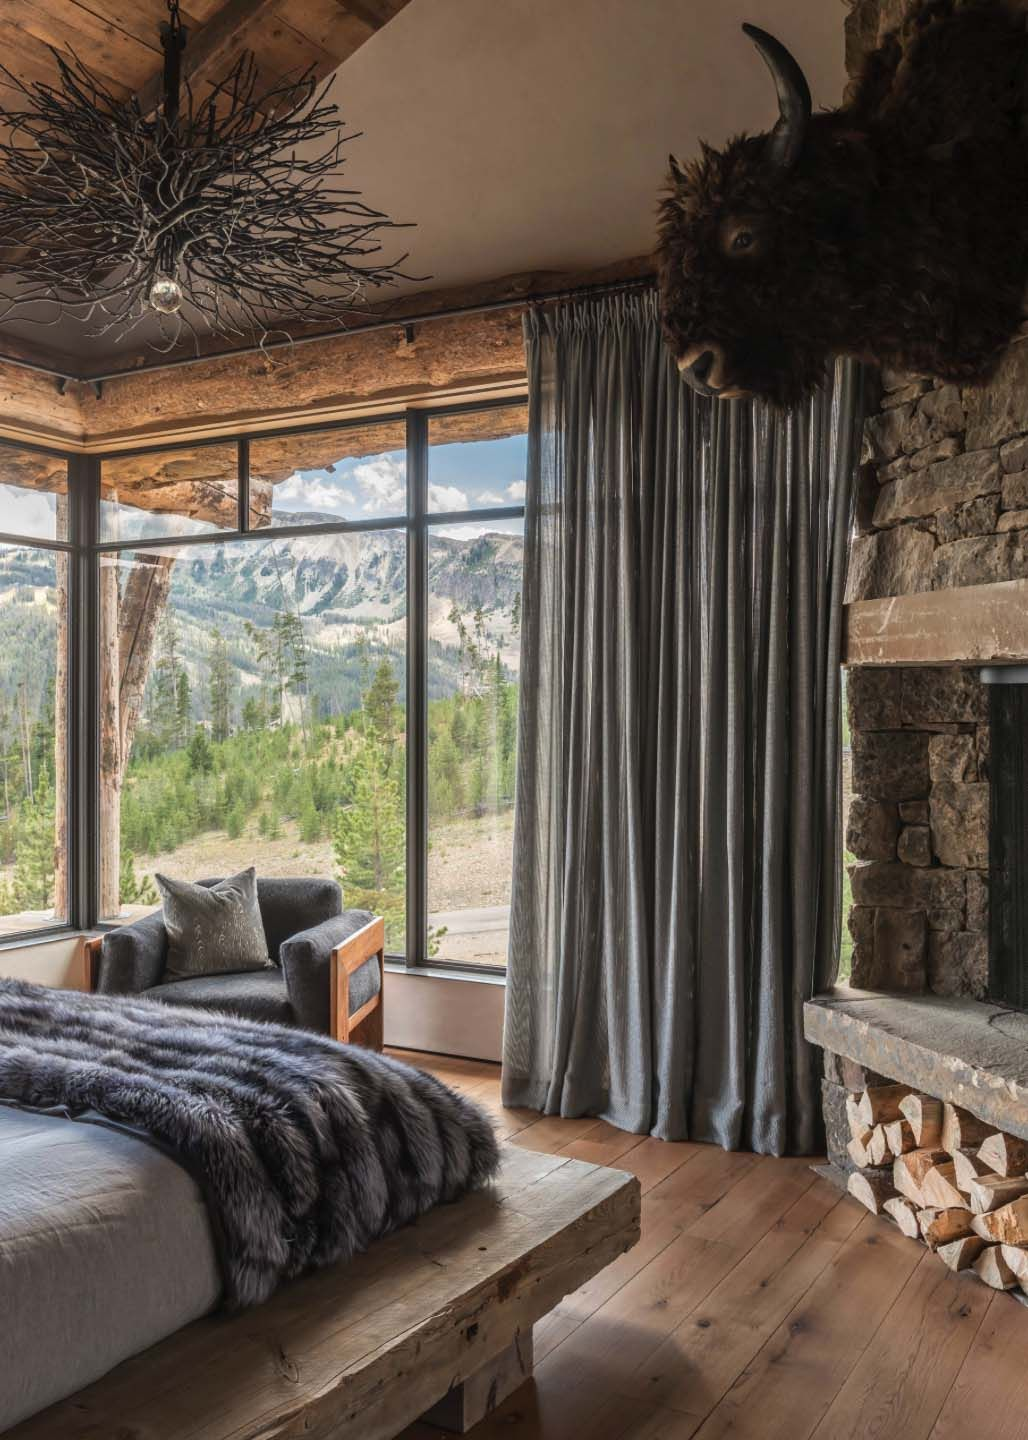 Schlafzimmer Modern Rustikal Rustic Chic Mountain Home In The Rocky Mountain Foothills Future